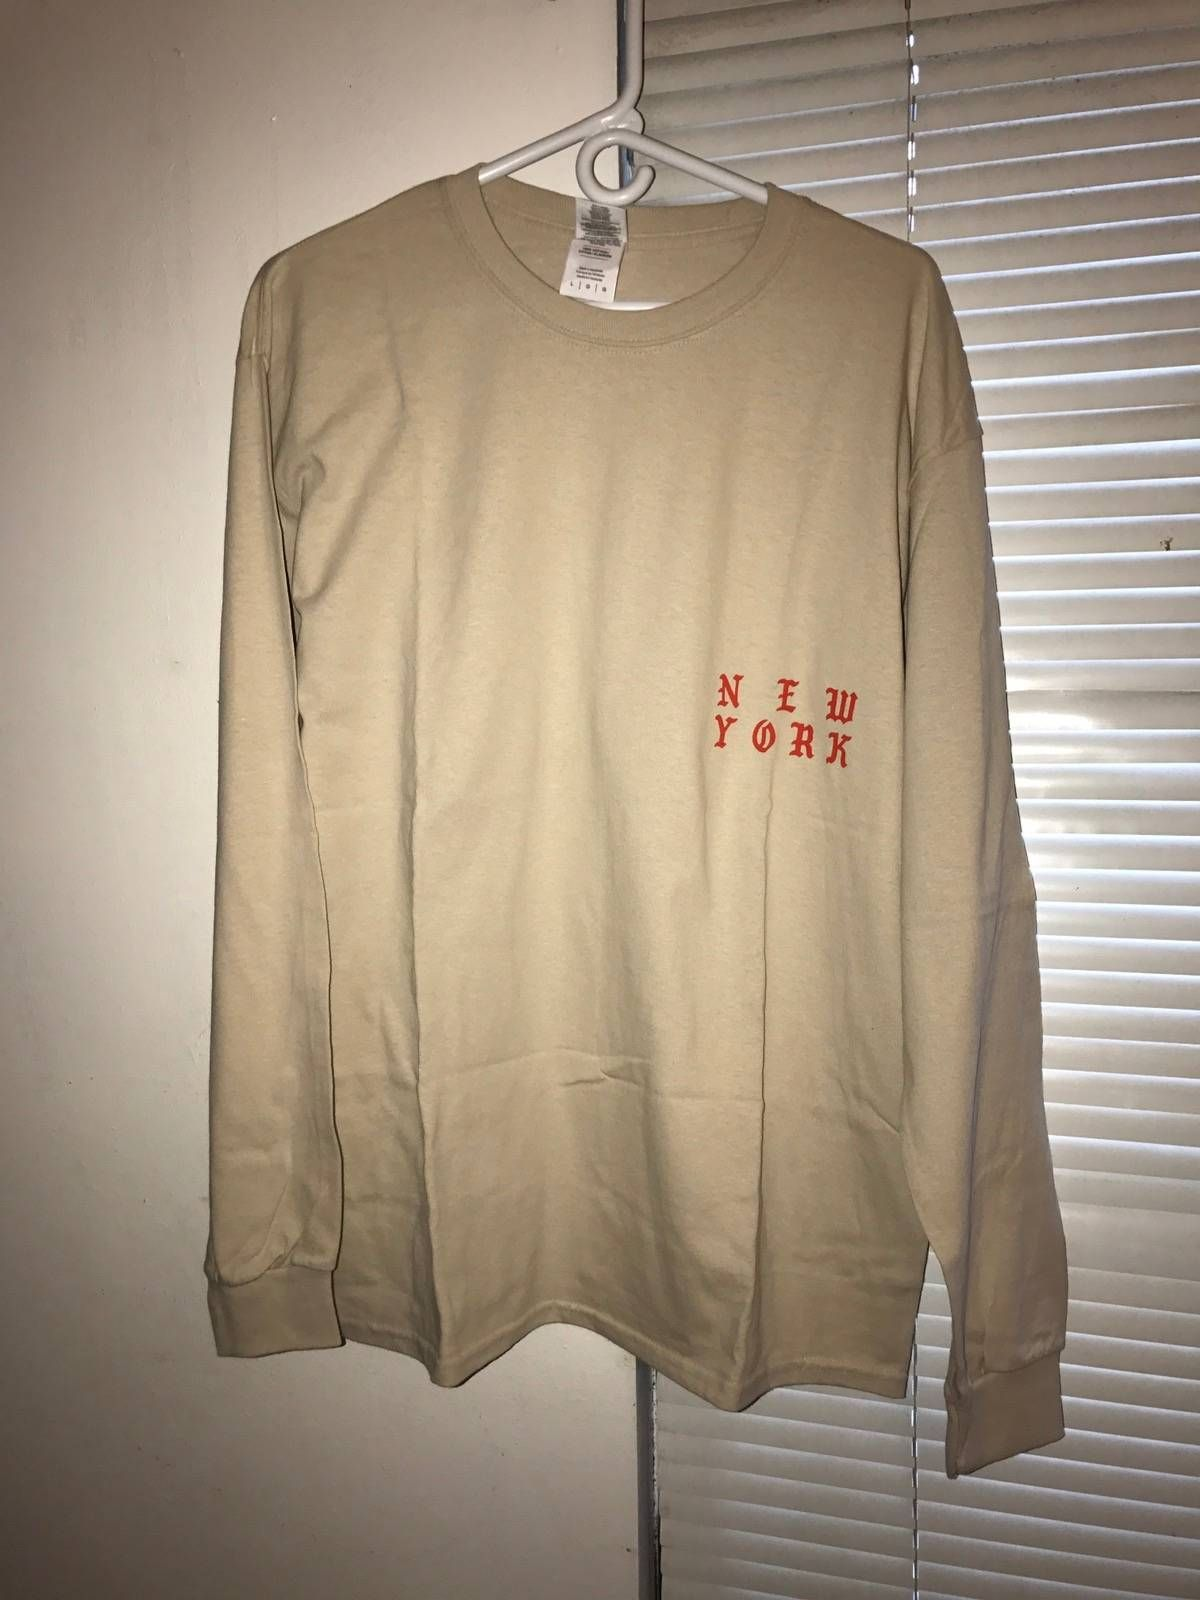 9178289d4f3a Kanye West Kanye Merch Long Sleeve T-shirt Size l - Long Sleeve T-Shirts  for Sale - Grailed